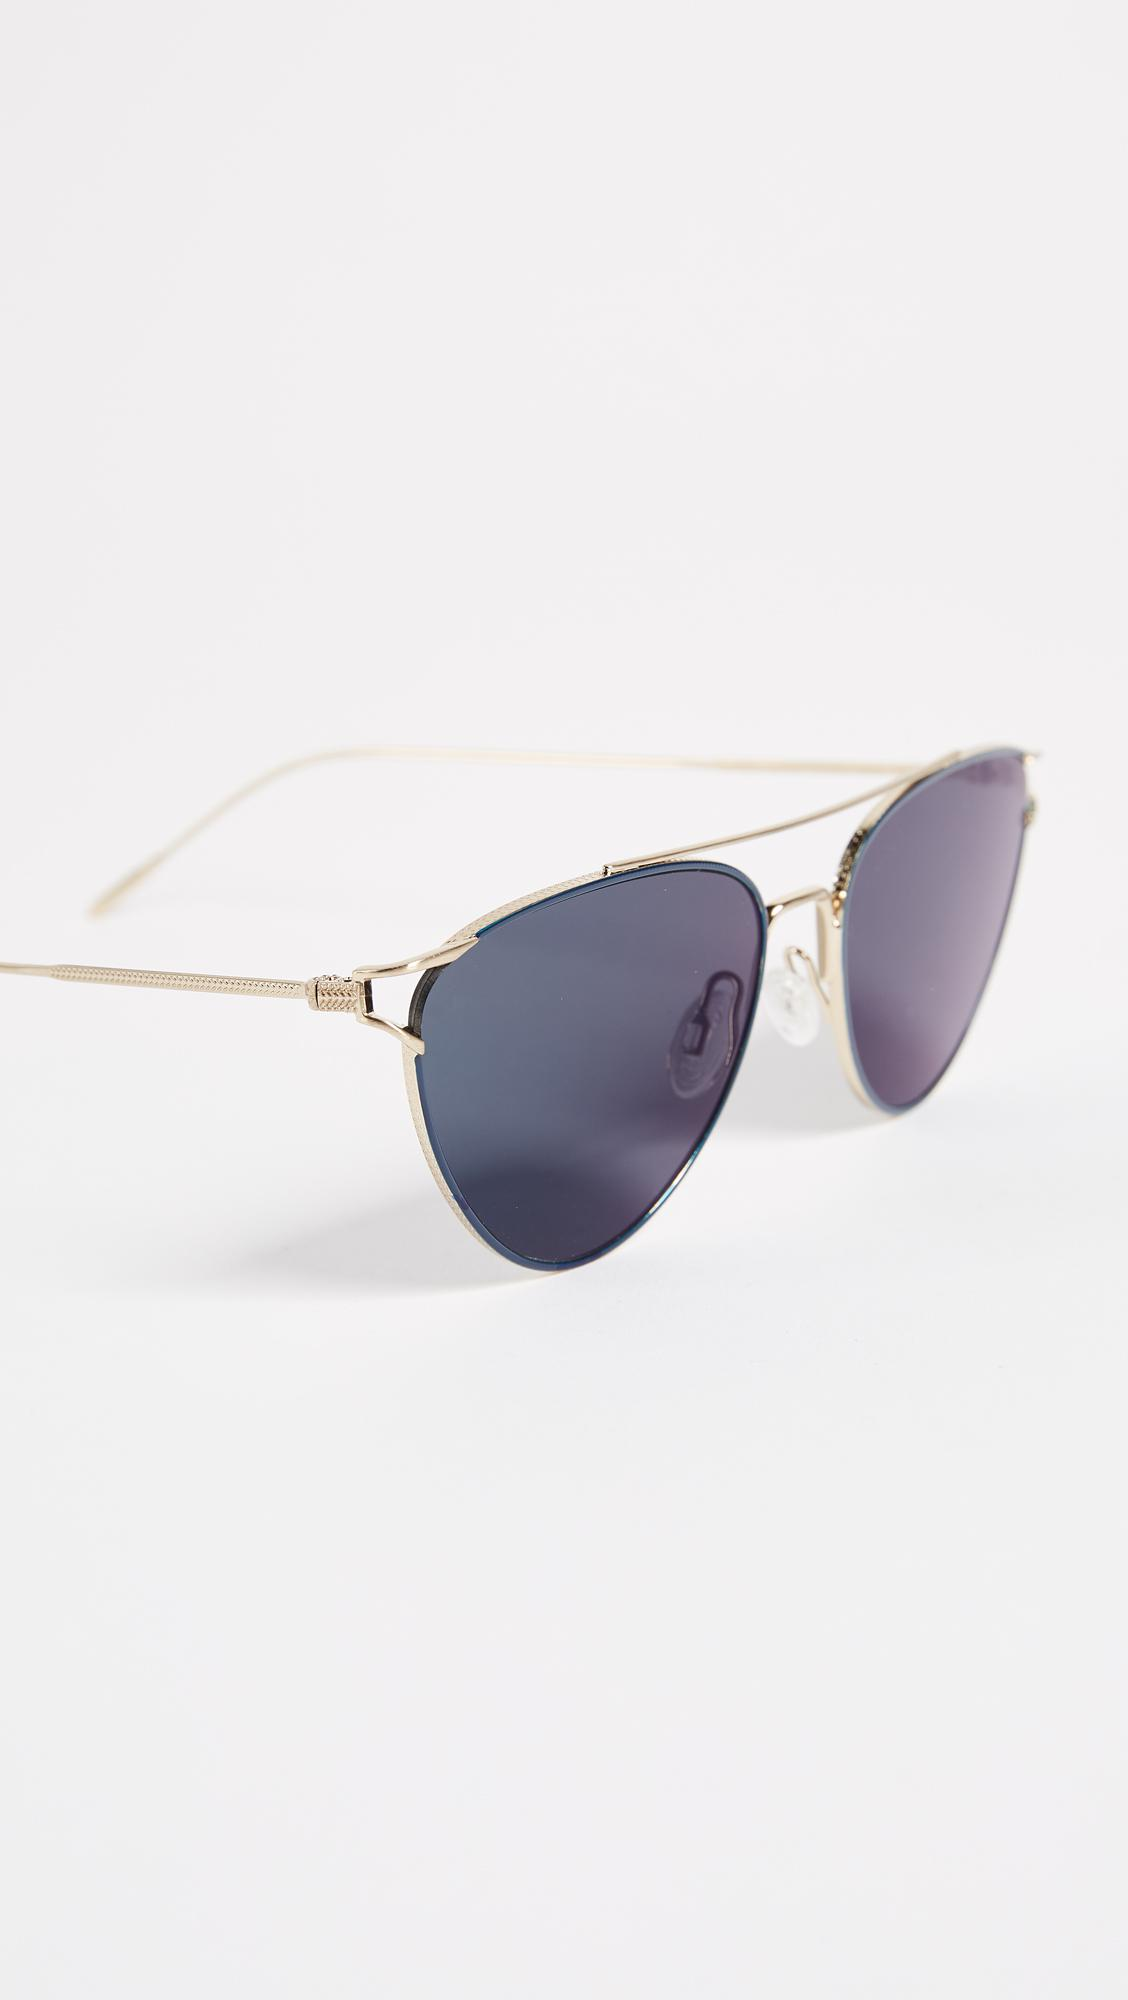 Oliver Peoples Floriana Sunglasses in Brushed Soft Gold/Teal Blue (Blue)